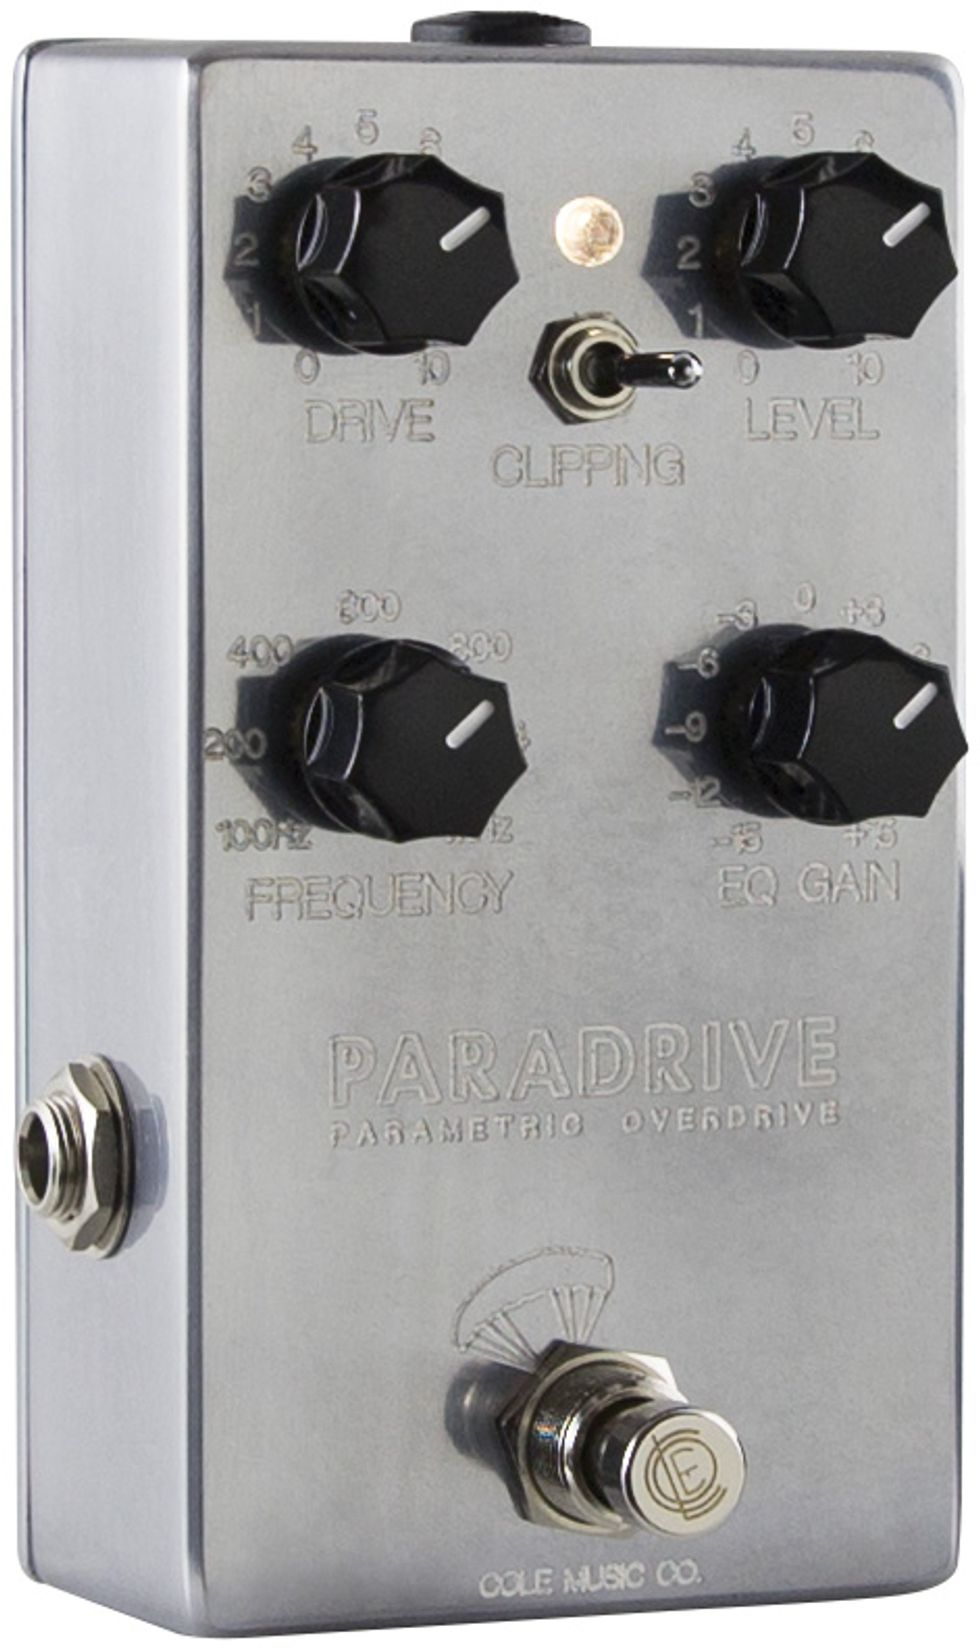 This Overdrive Has an Identity Crisis—In a Good Way